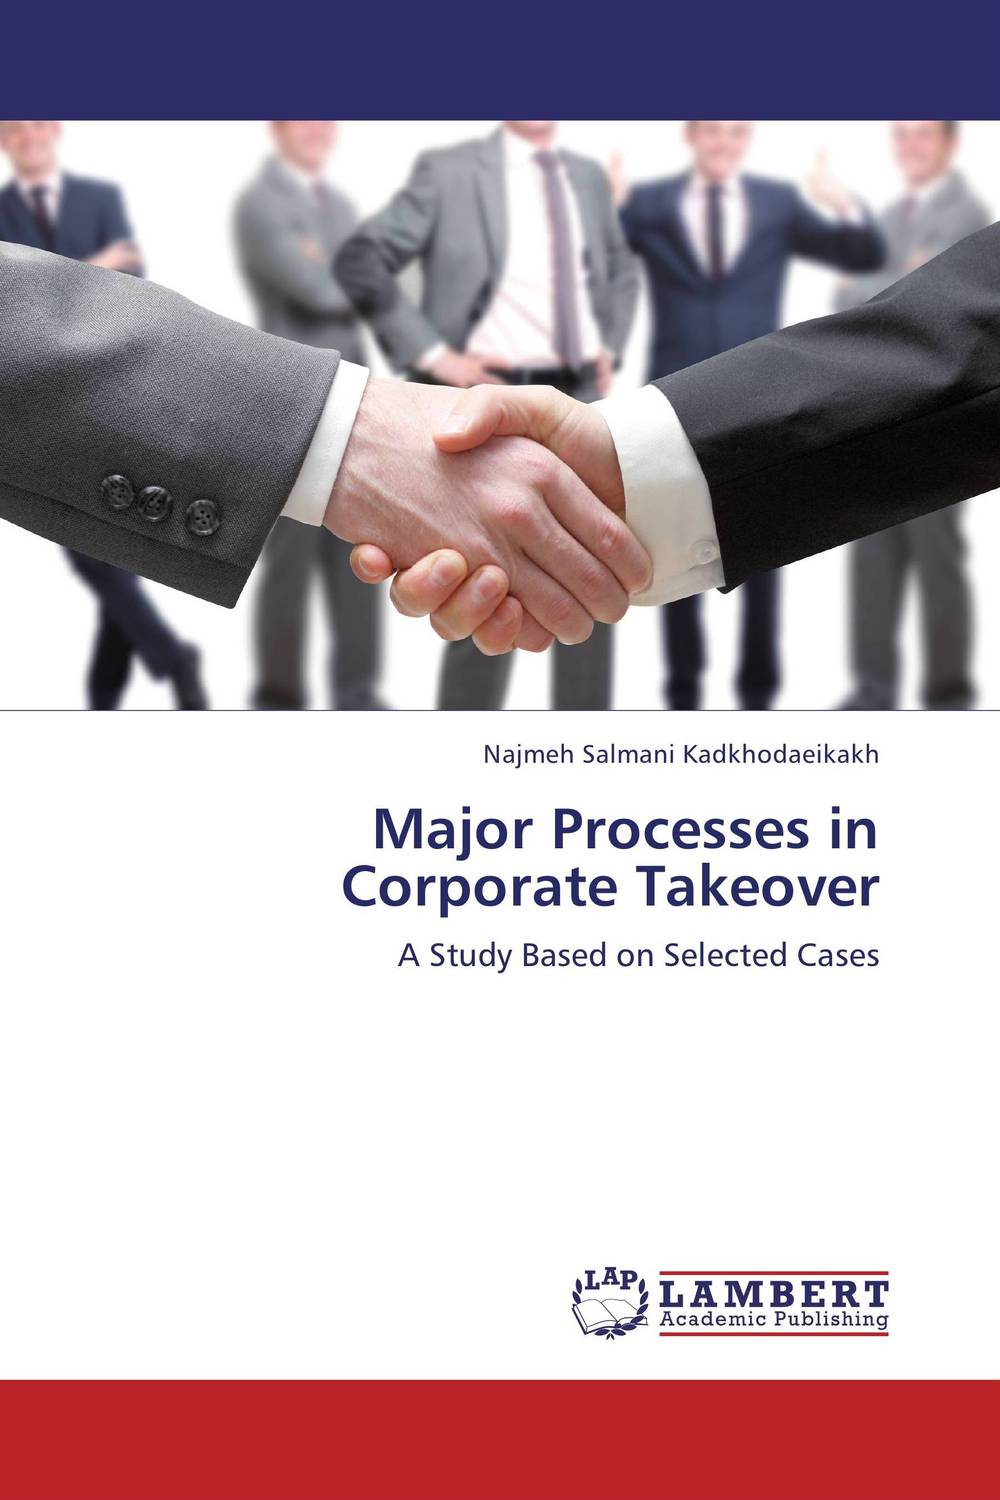 Major Processes in Corporate Takeover corporate takeovers